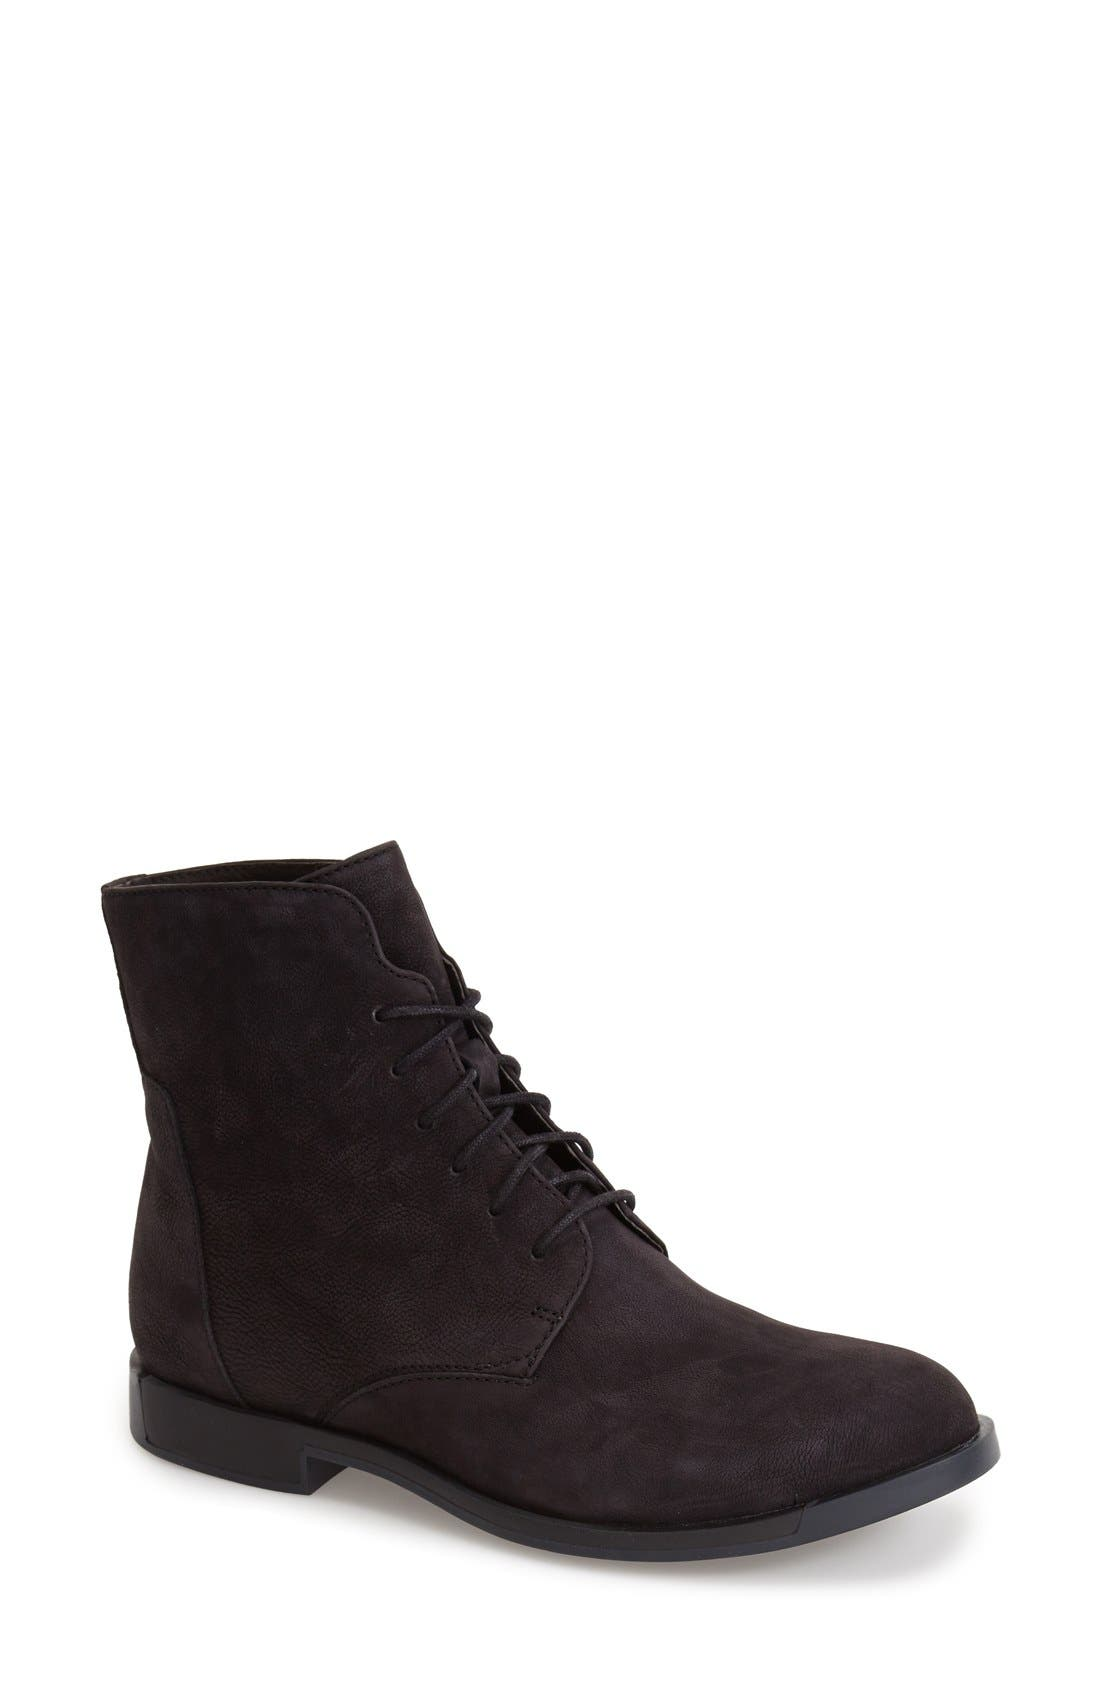 Main Image - Camper Lace-Up Bootie (Women)